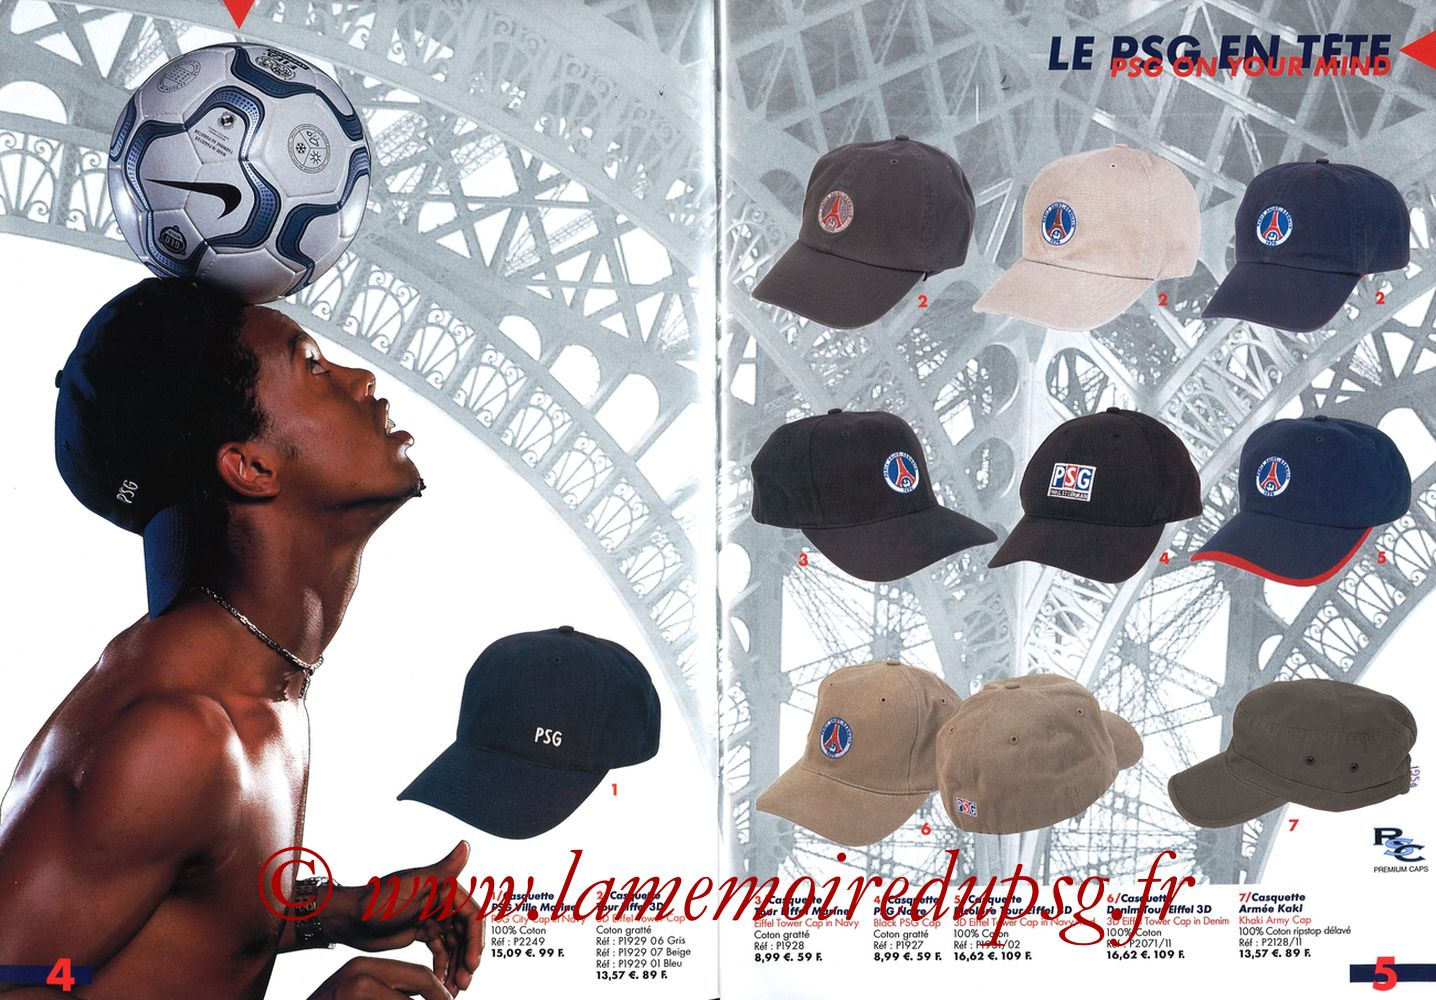 Catalogue PSG - 2001-02 - Pages 04 et 05